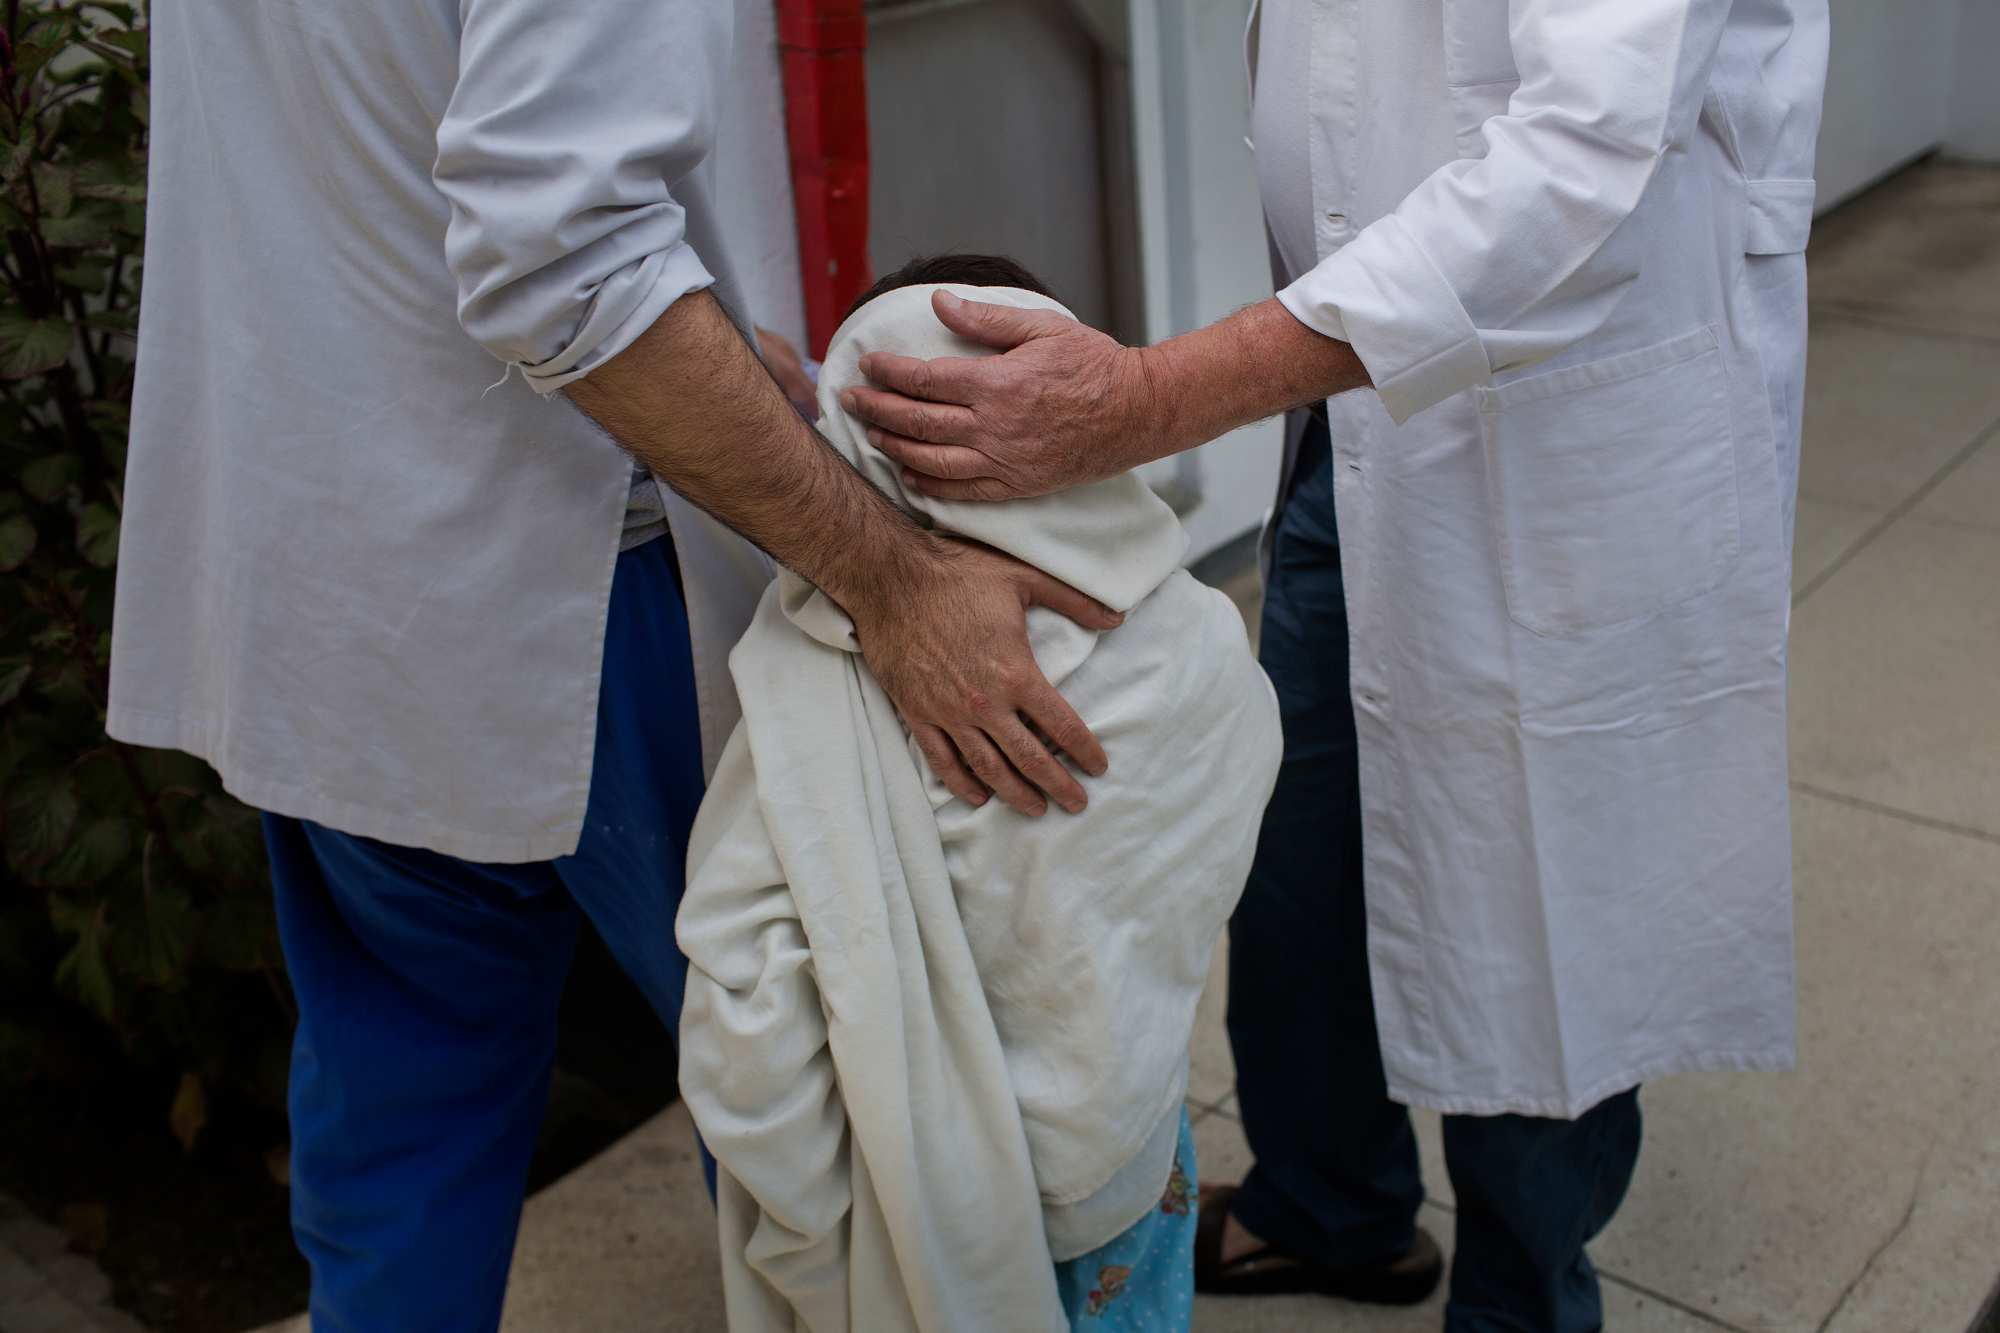 Physical therapist Alberto Carreno, left, and Dr. Alberto Landini, right, comfort Sangeer, 7, at Emergency Surgical Center. Sangeer was upset on visiting day because his family was unable to make the trip to Kabul to visit him.